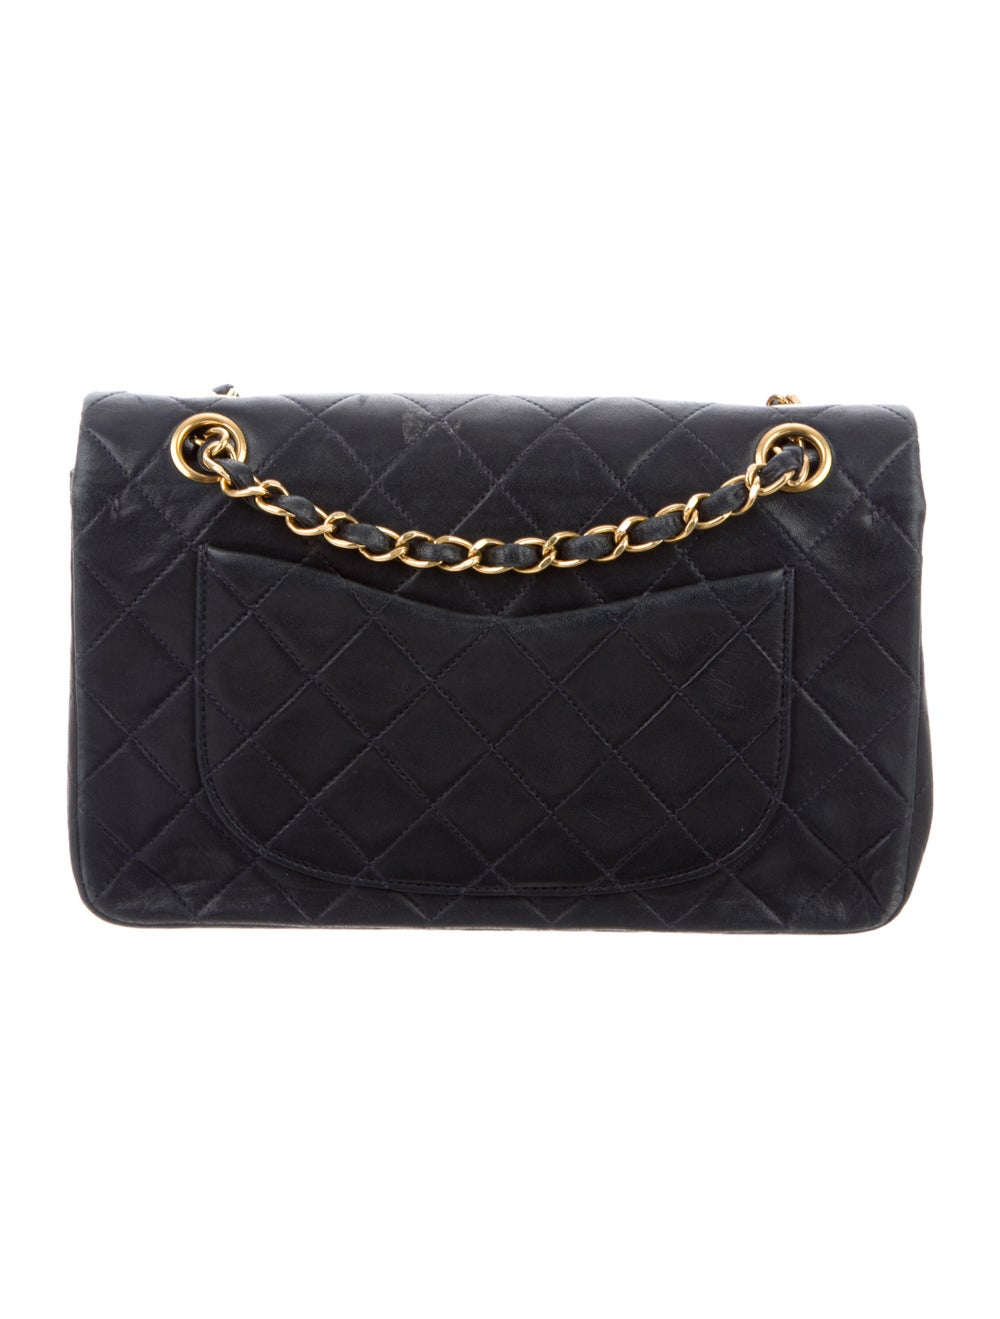 Chanel Small Classic Flap Bag Blue - image 4